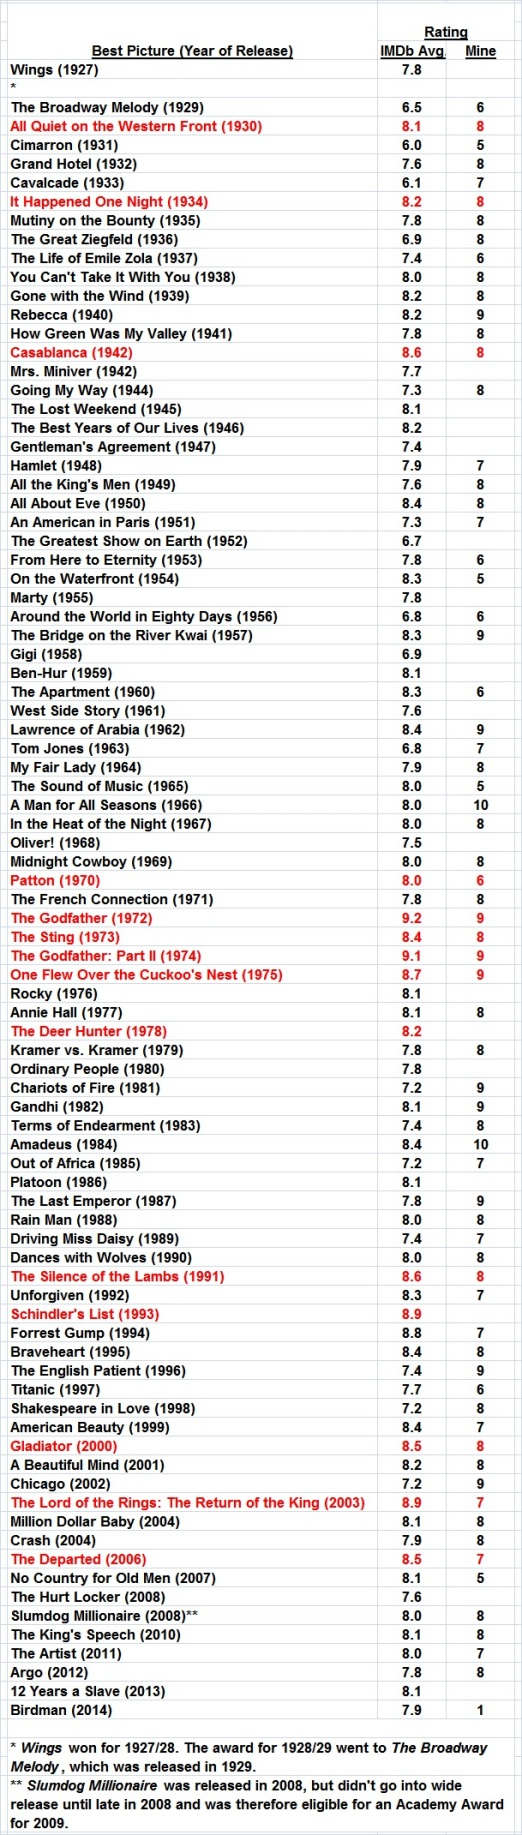 Ratings of best pictures_2